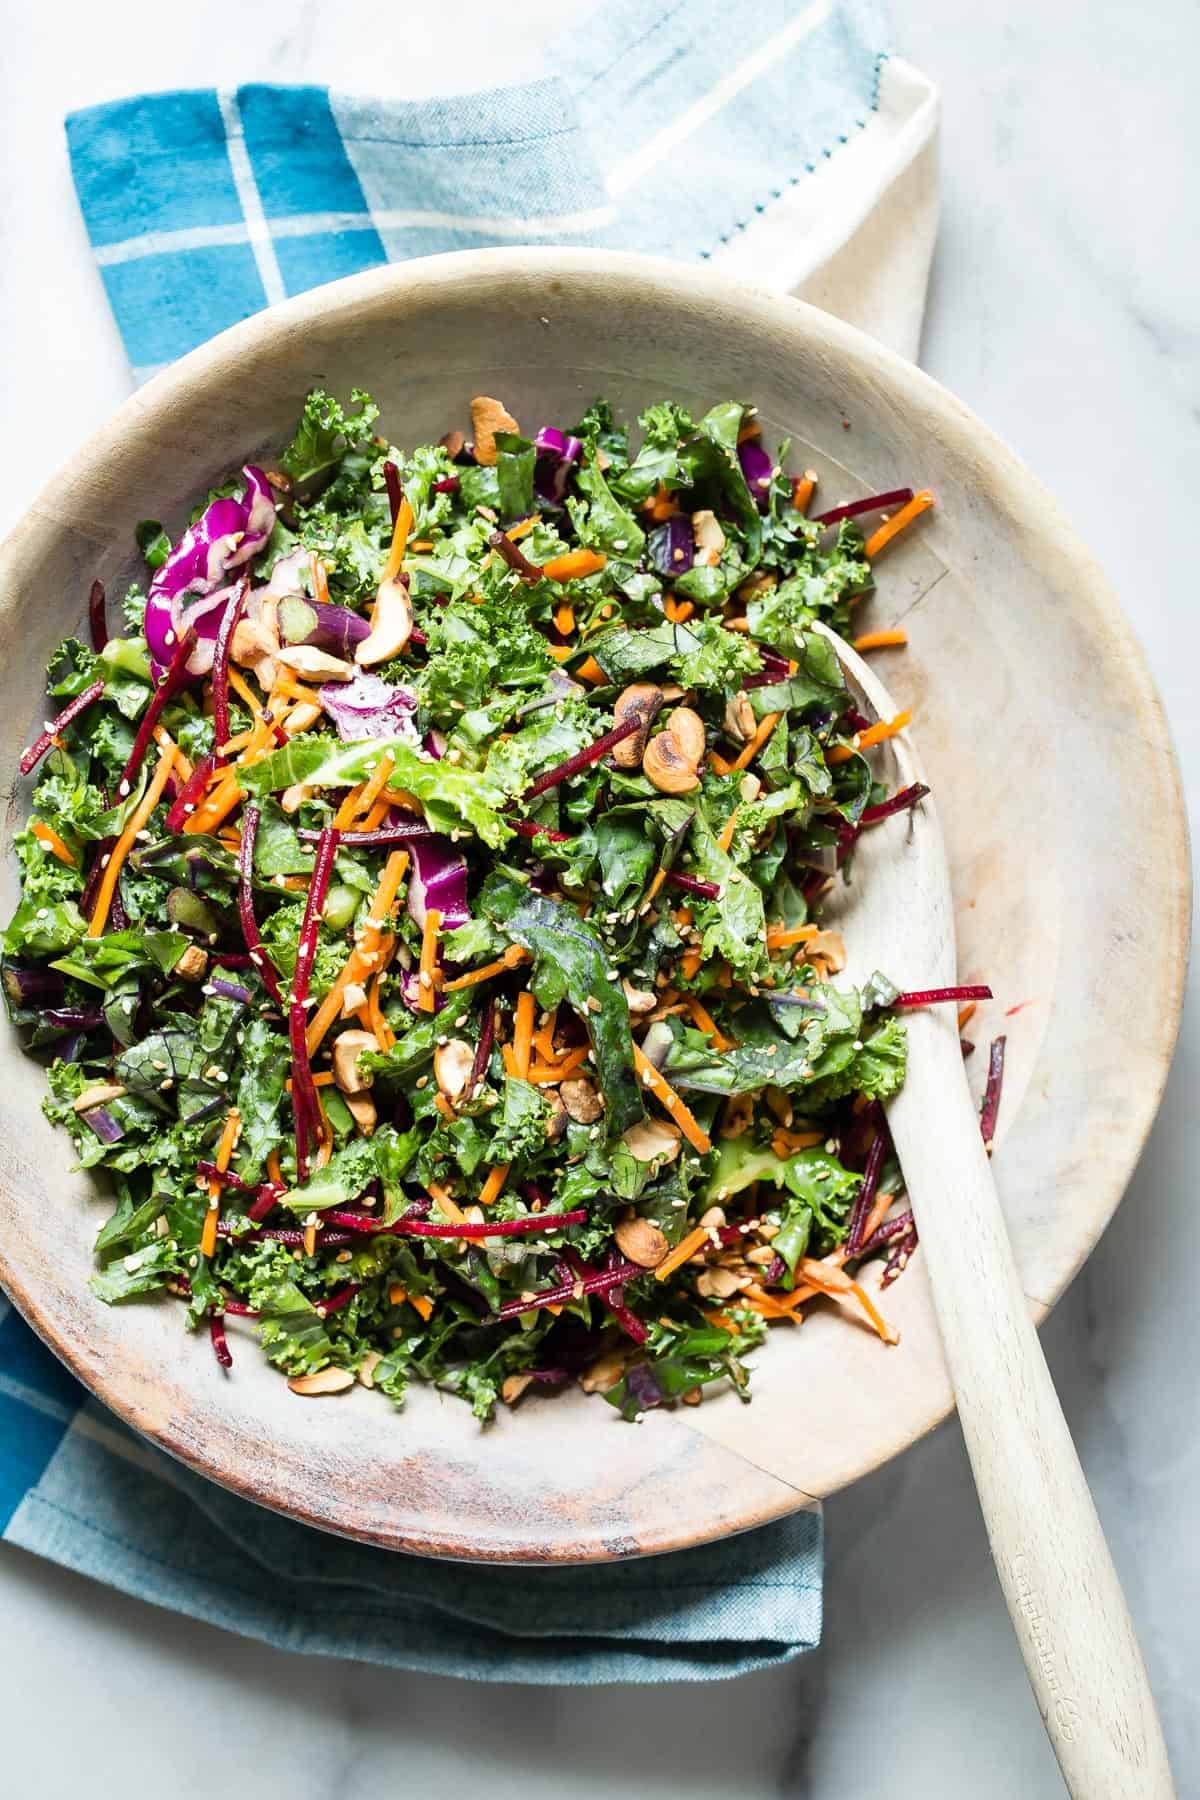 A super fresh and simple Kale Salad with shredded beet, red cabbage and carrots. I added marinated tofu chunks and grilled vegetables for an easy and healthy lunch.